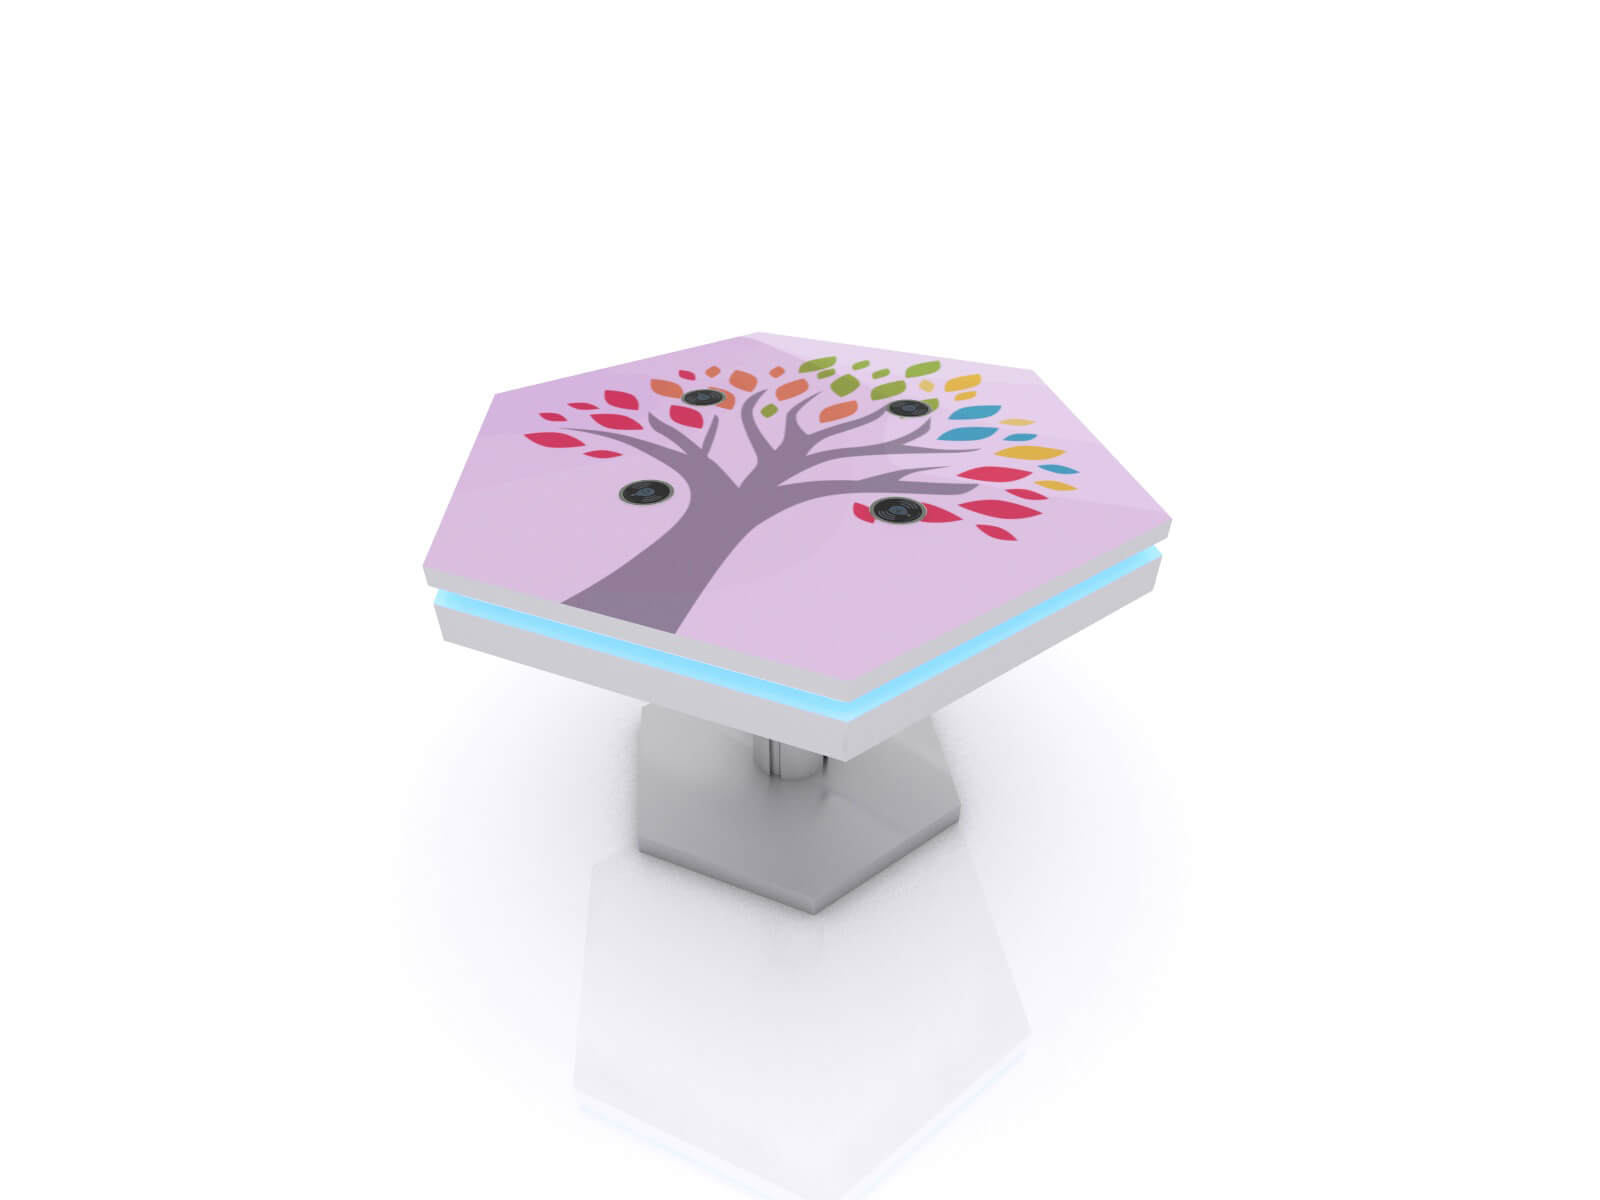 MOD-1464 Trade Show and Event Wireless Charging Coffee Table - image 1